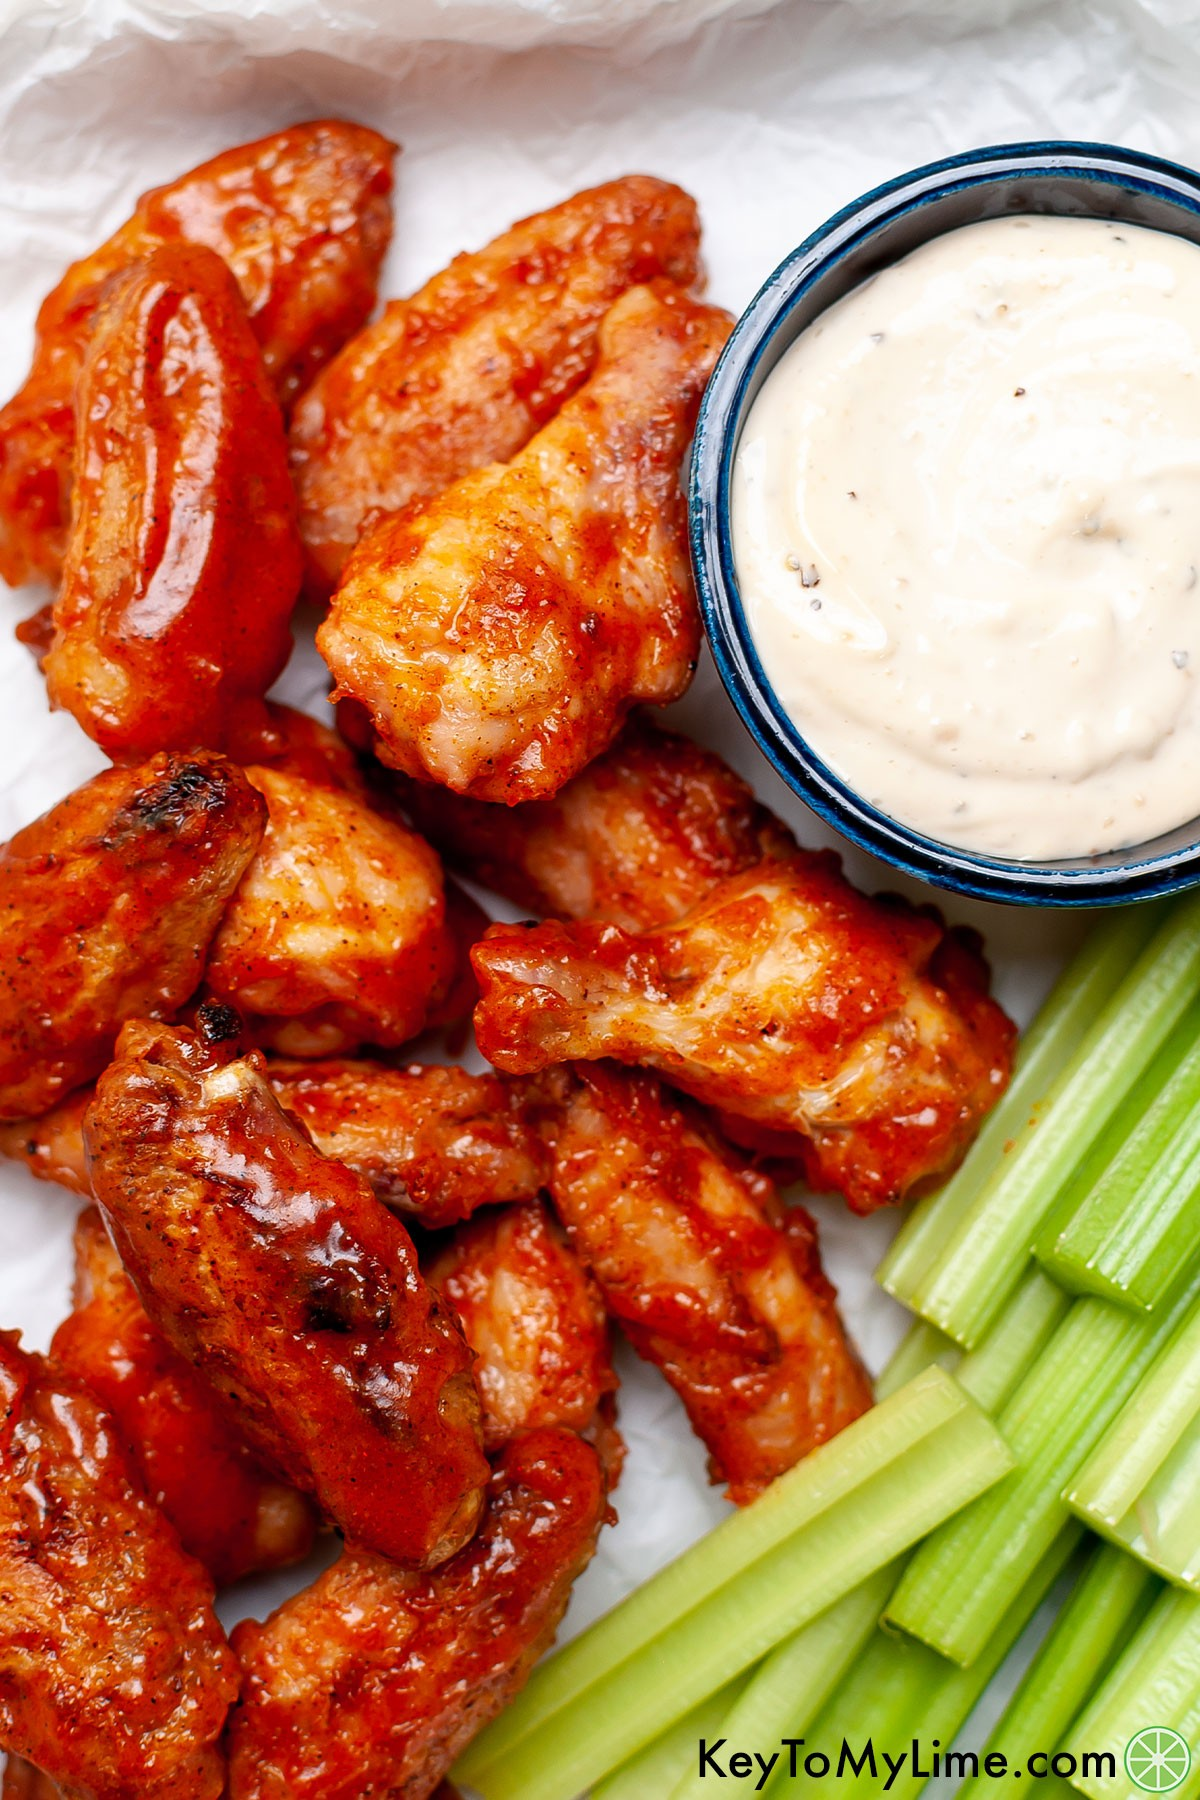 Grilled sticky wings next to celery.